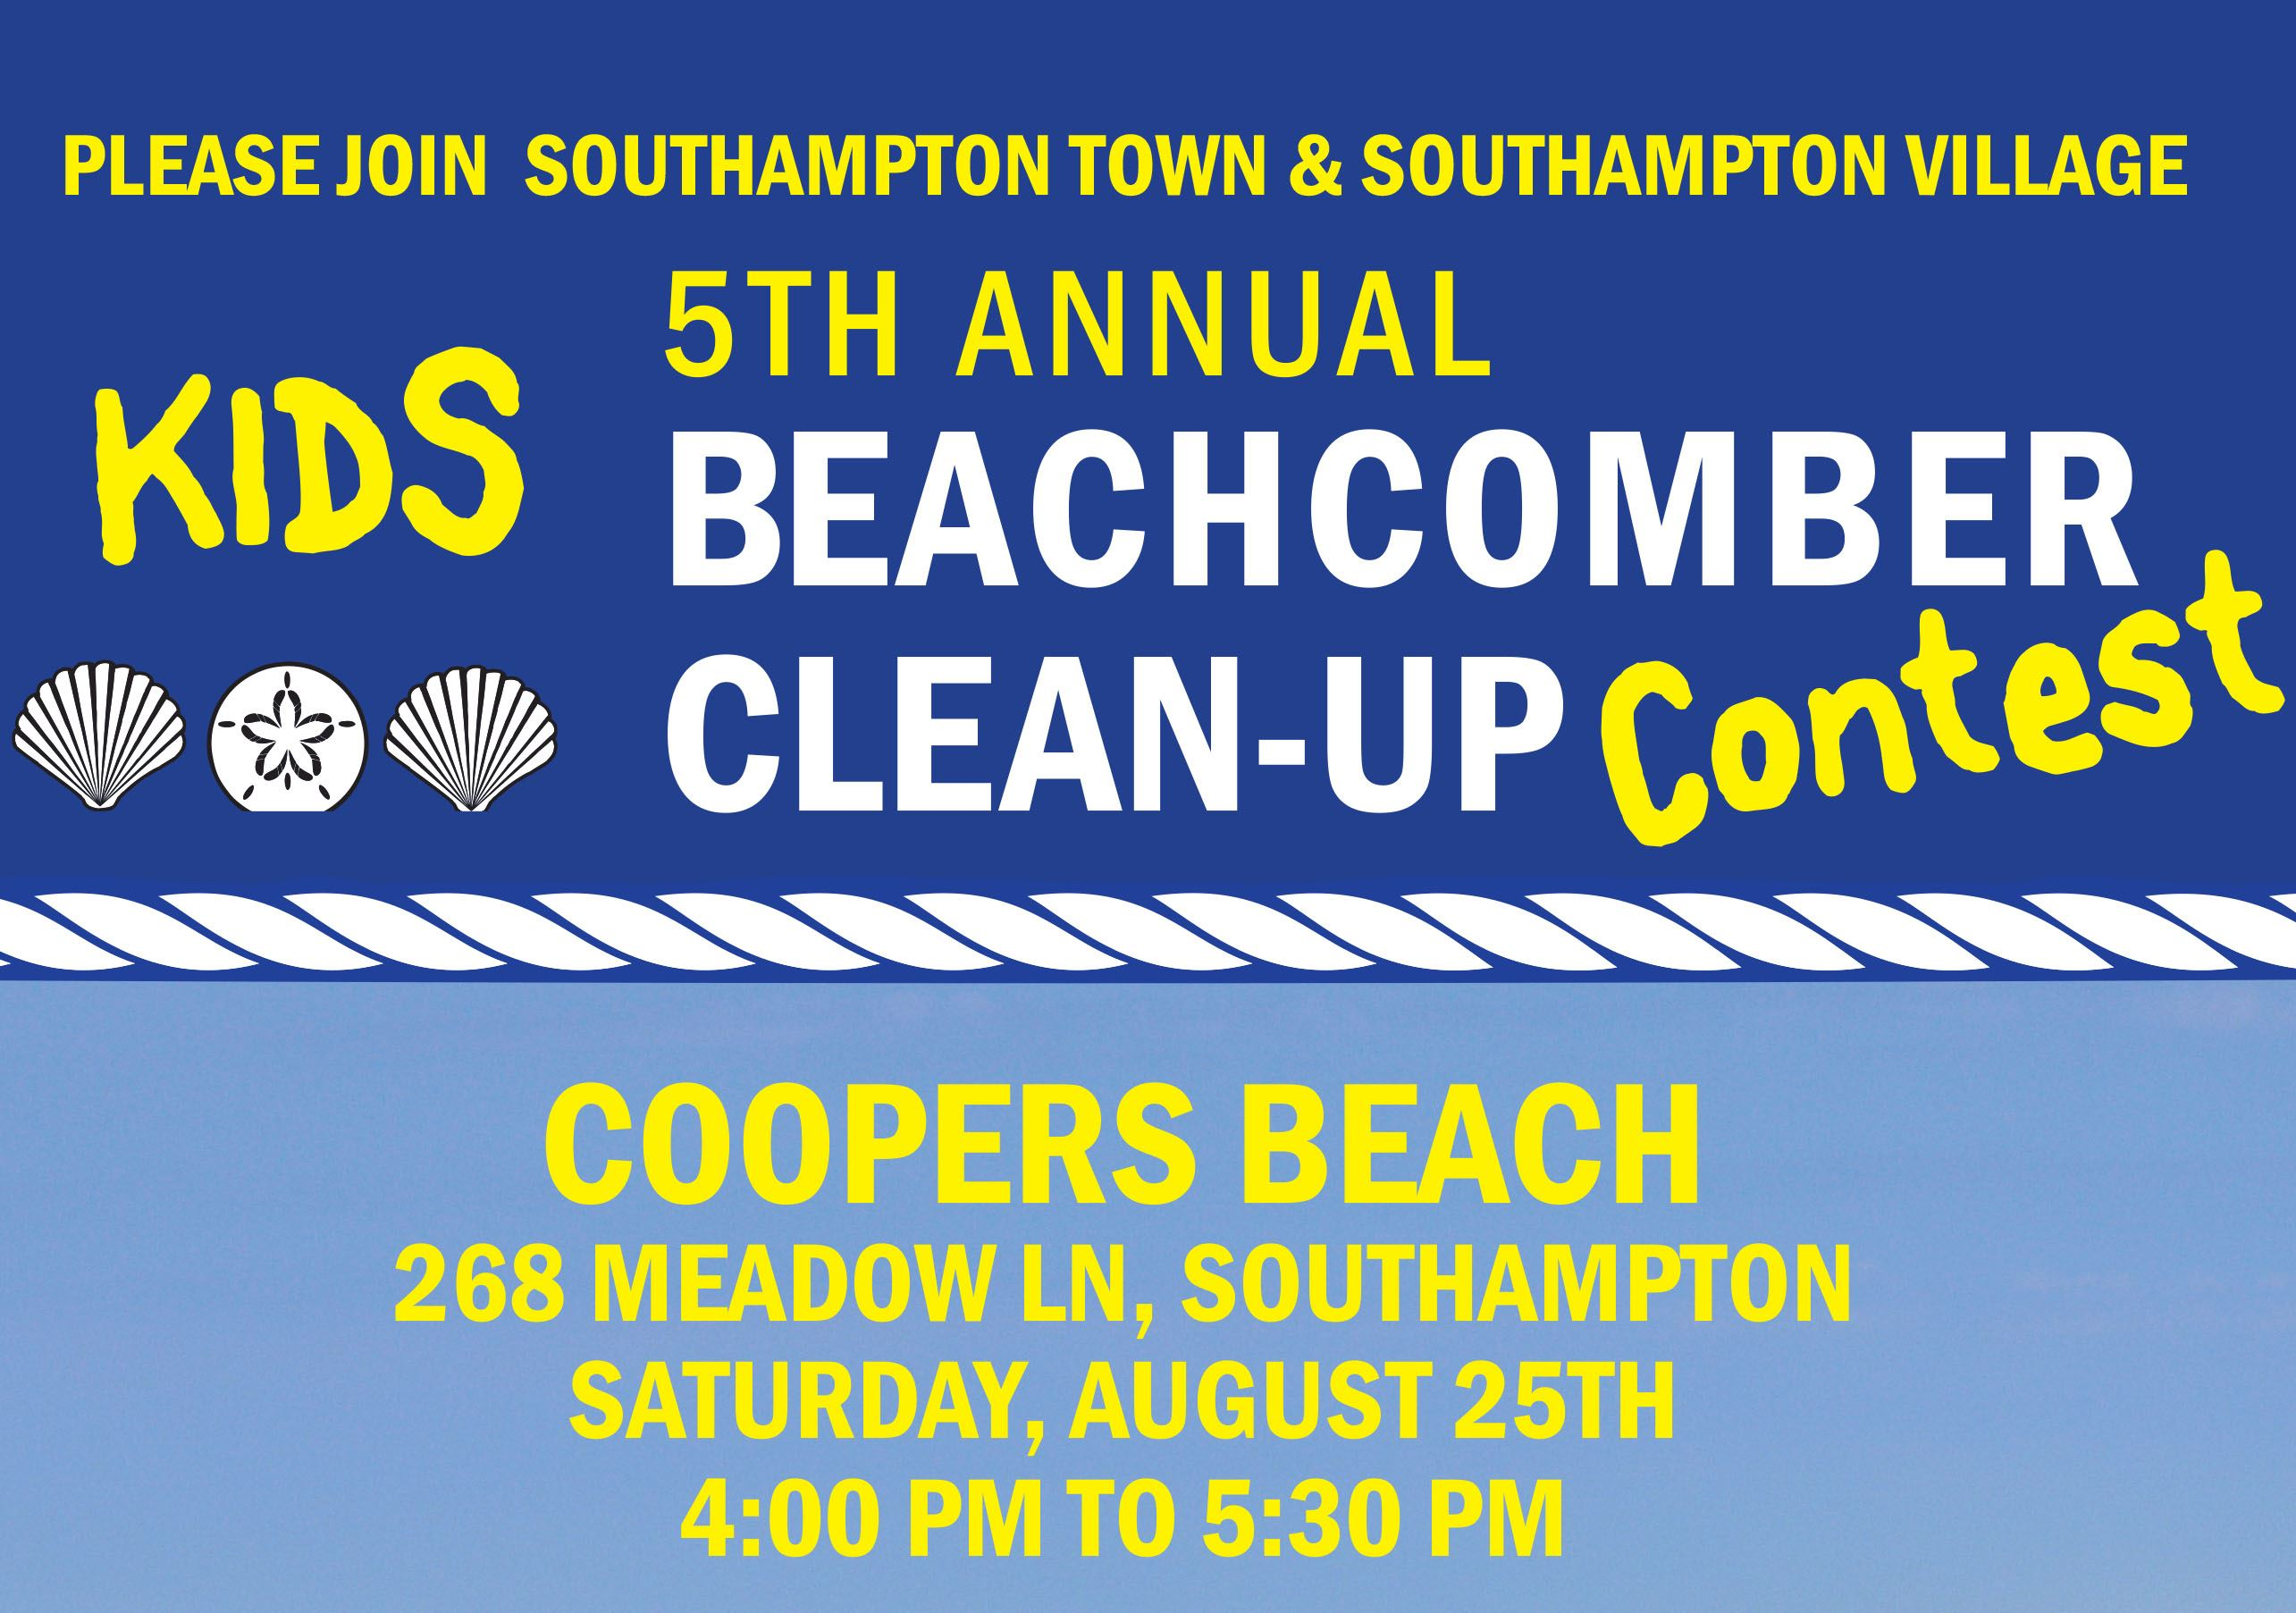 Image of Beach cleanup contest